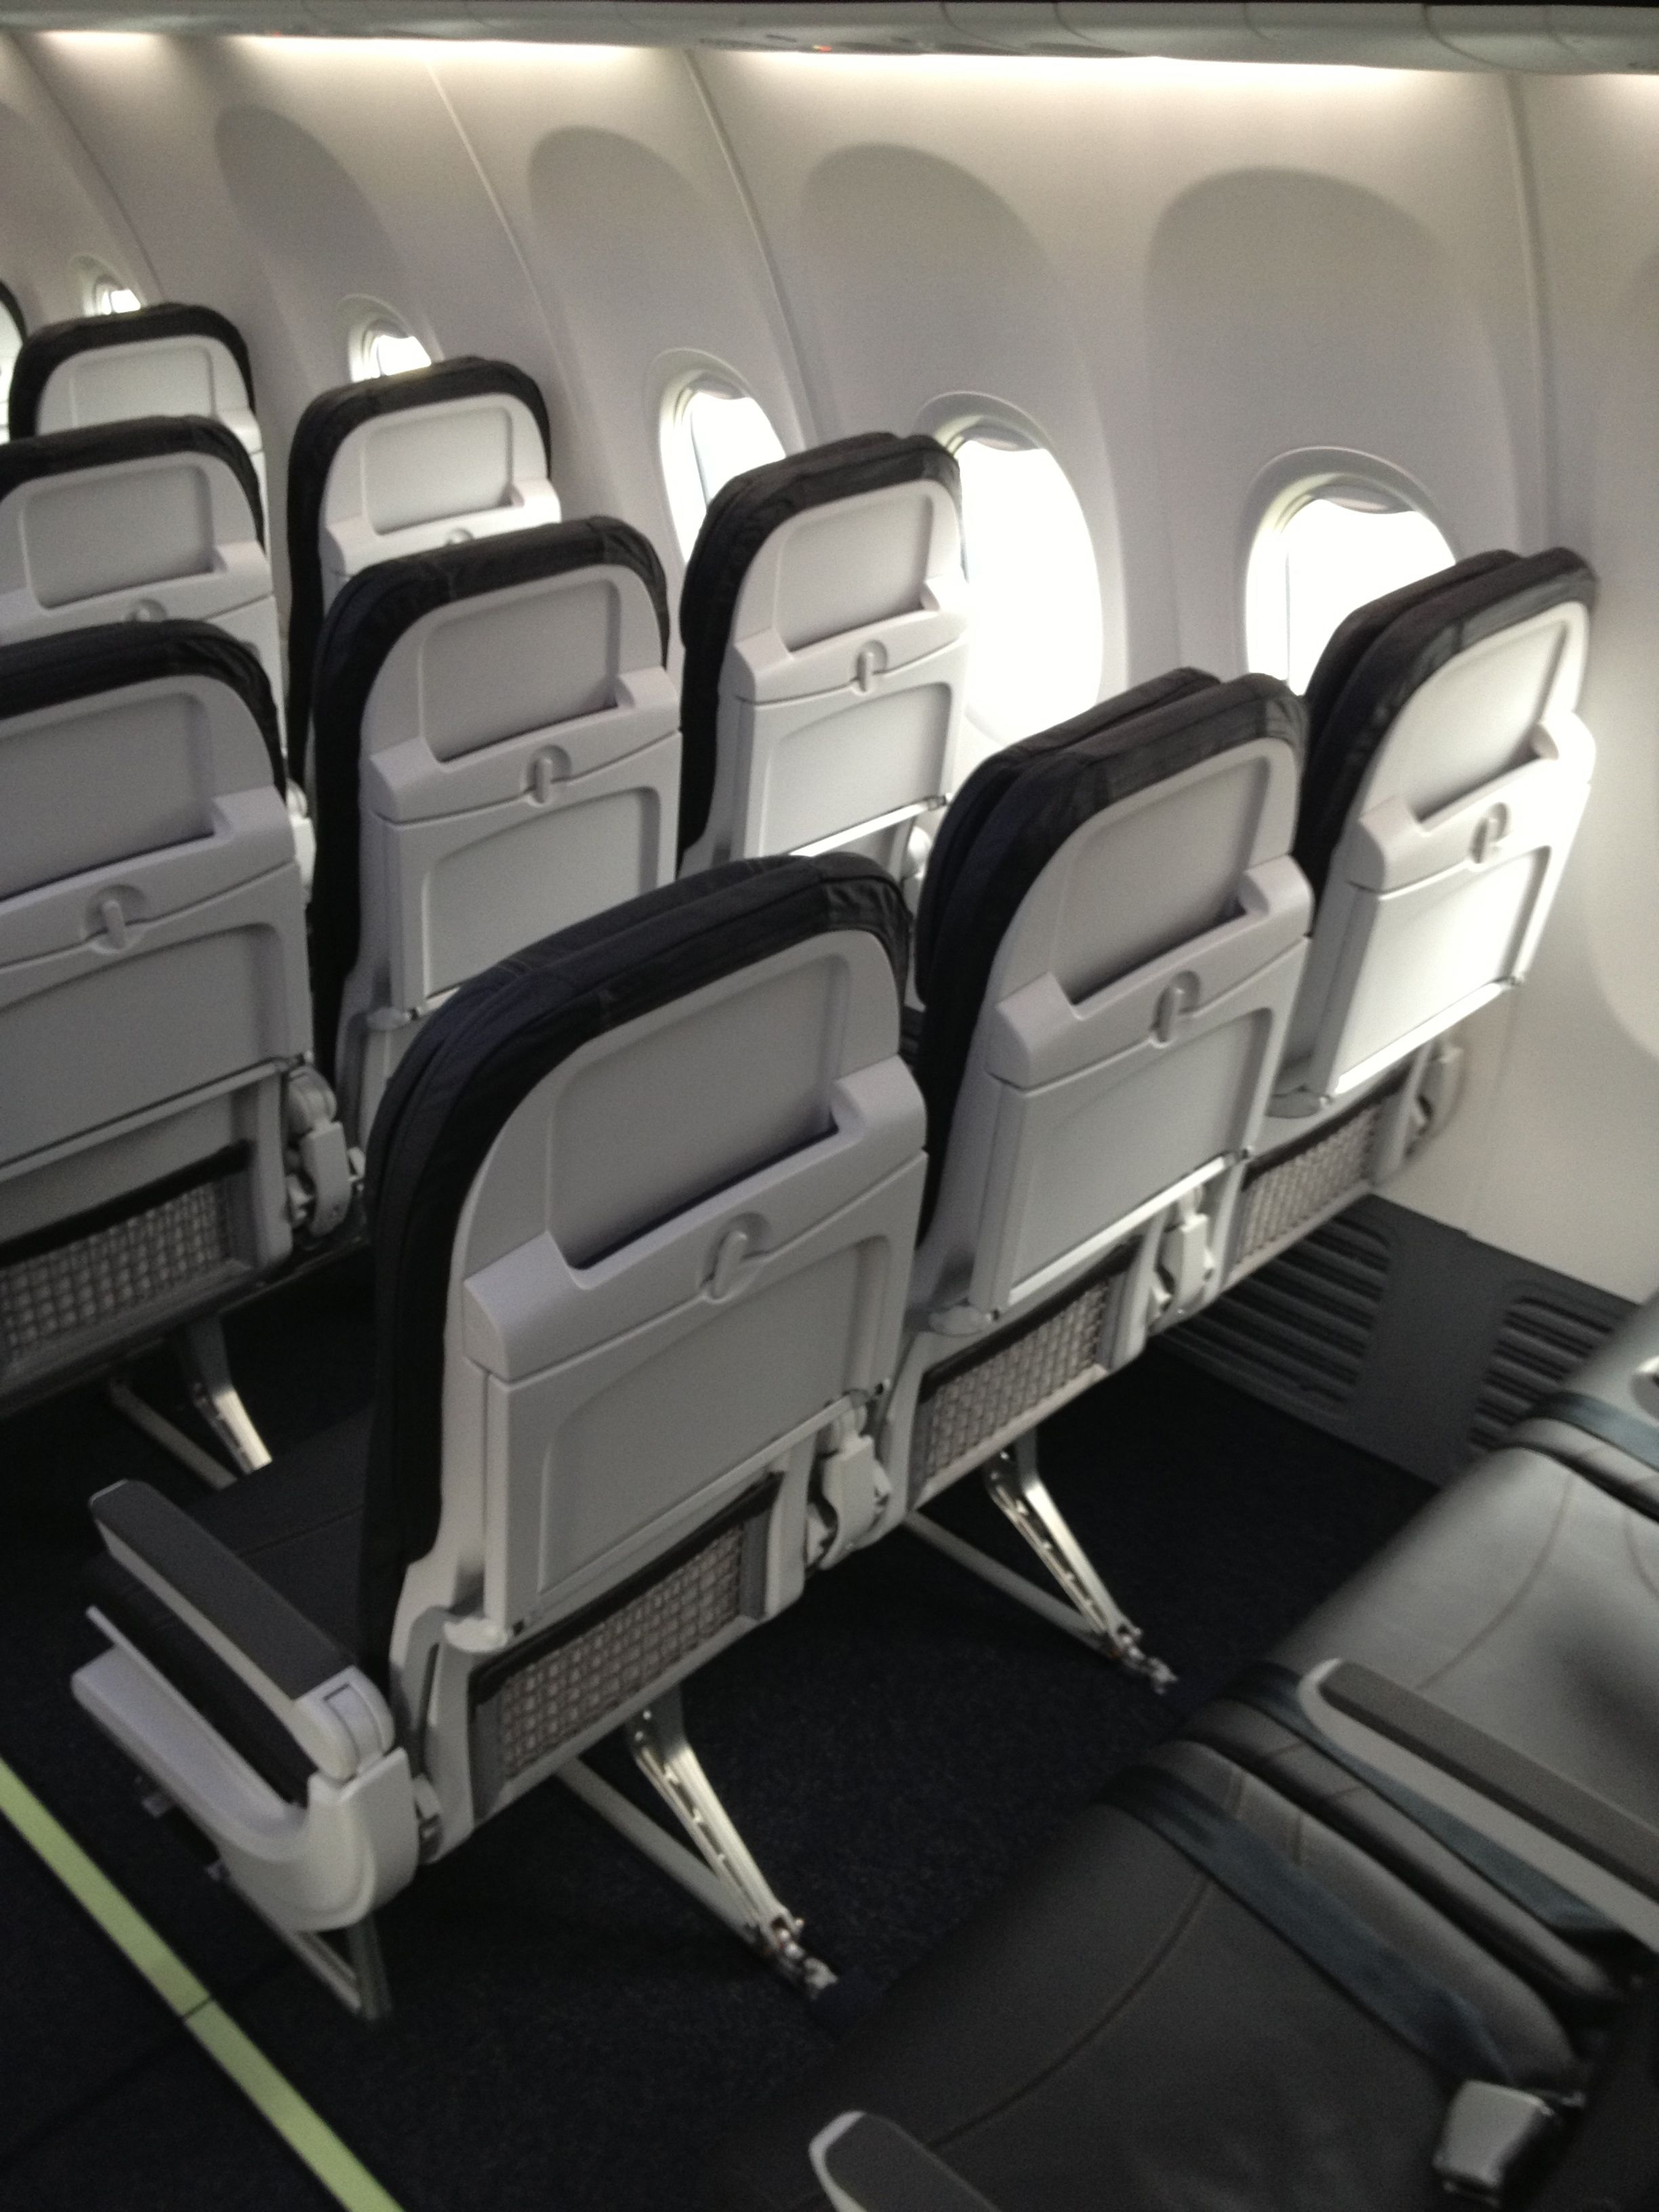 the new Recaro seats on Alaska Airline\'s Boeing 737-900ER | Boeing ...